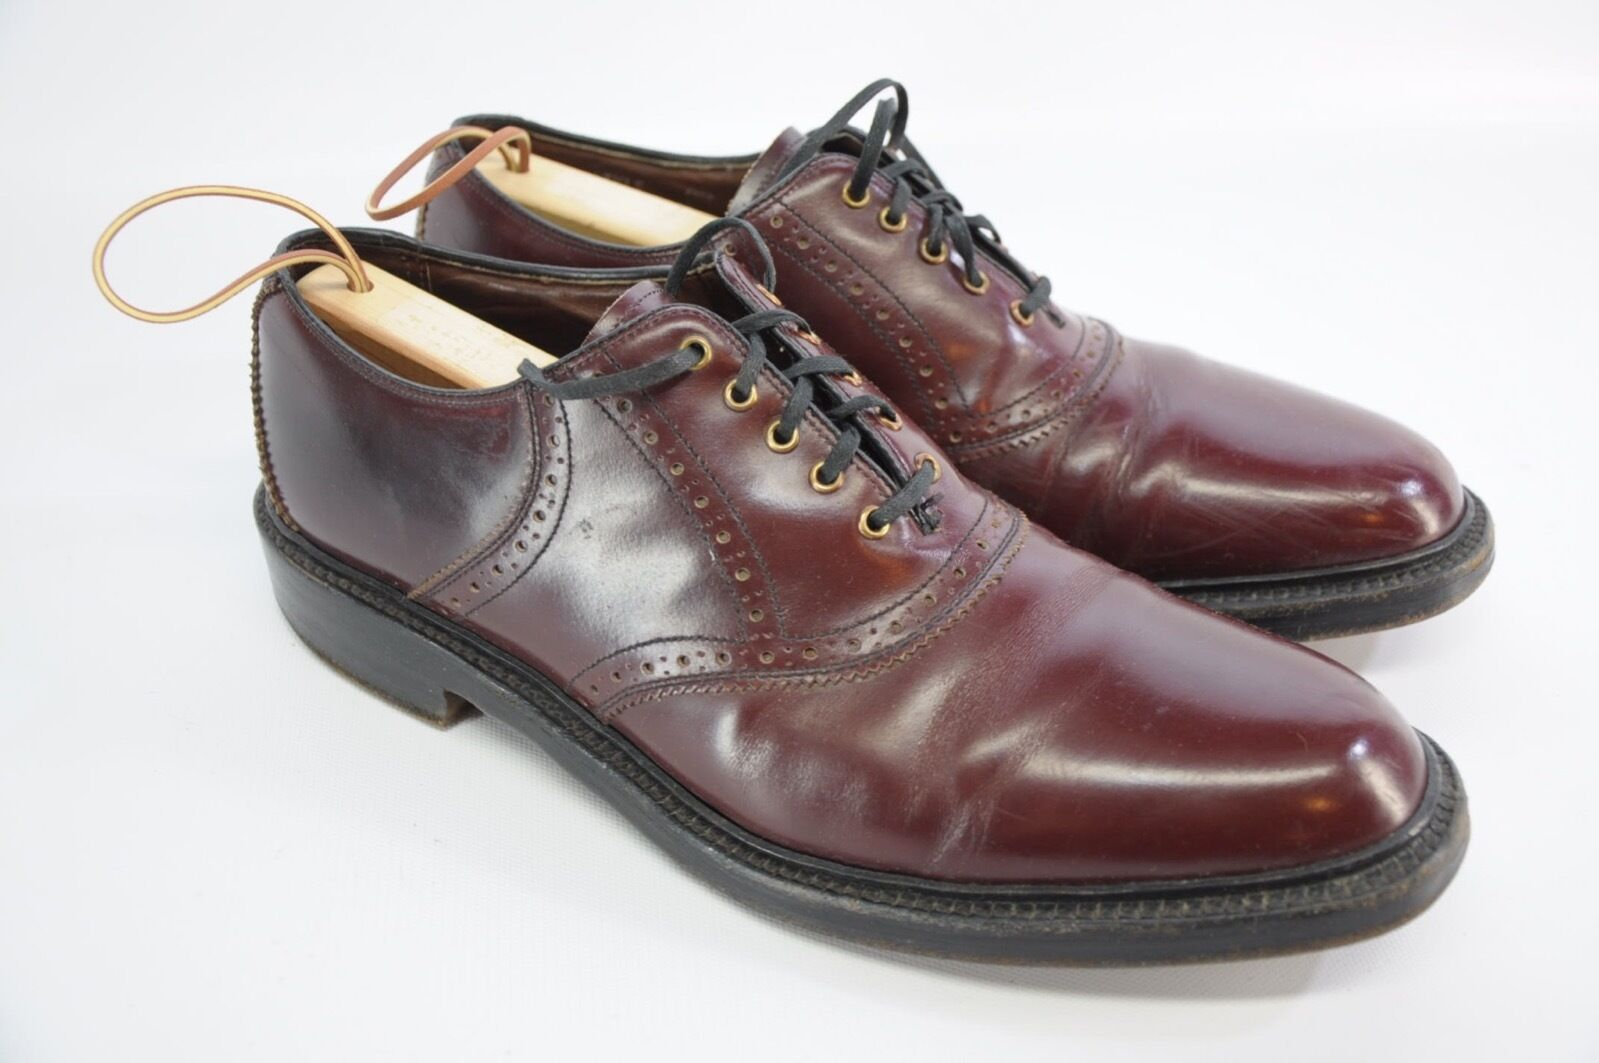 d327a84cd47a VTG VTG VTG Sears Cordovan Oxblood Leather V Cleat Gunboat bluecher Oxford  shoes 10 C 7a4f76 ...